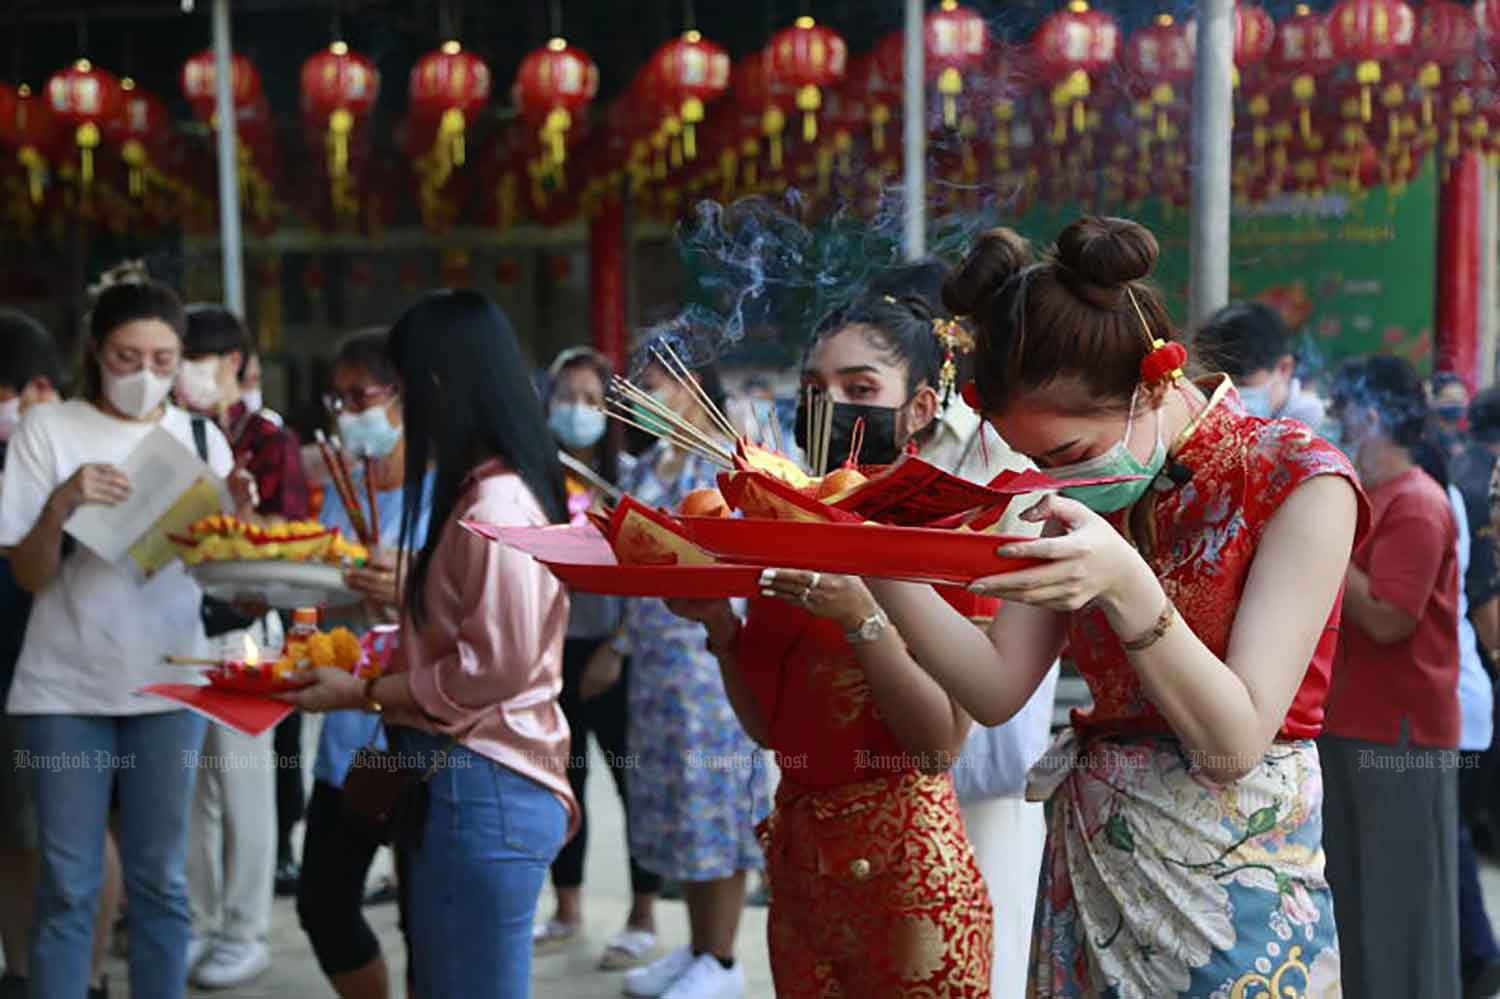 Worshippers wear the required face masks to protect against spreading Covid-19 while presenting offerings at Wat Mangkon Kamalawat in Bangkok on Thursday. (Photo: Arnun Chonmahatrakool)